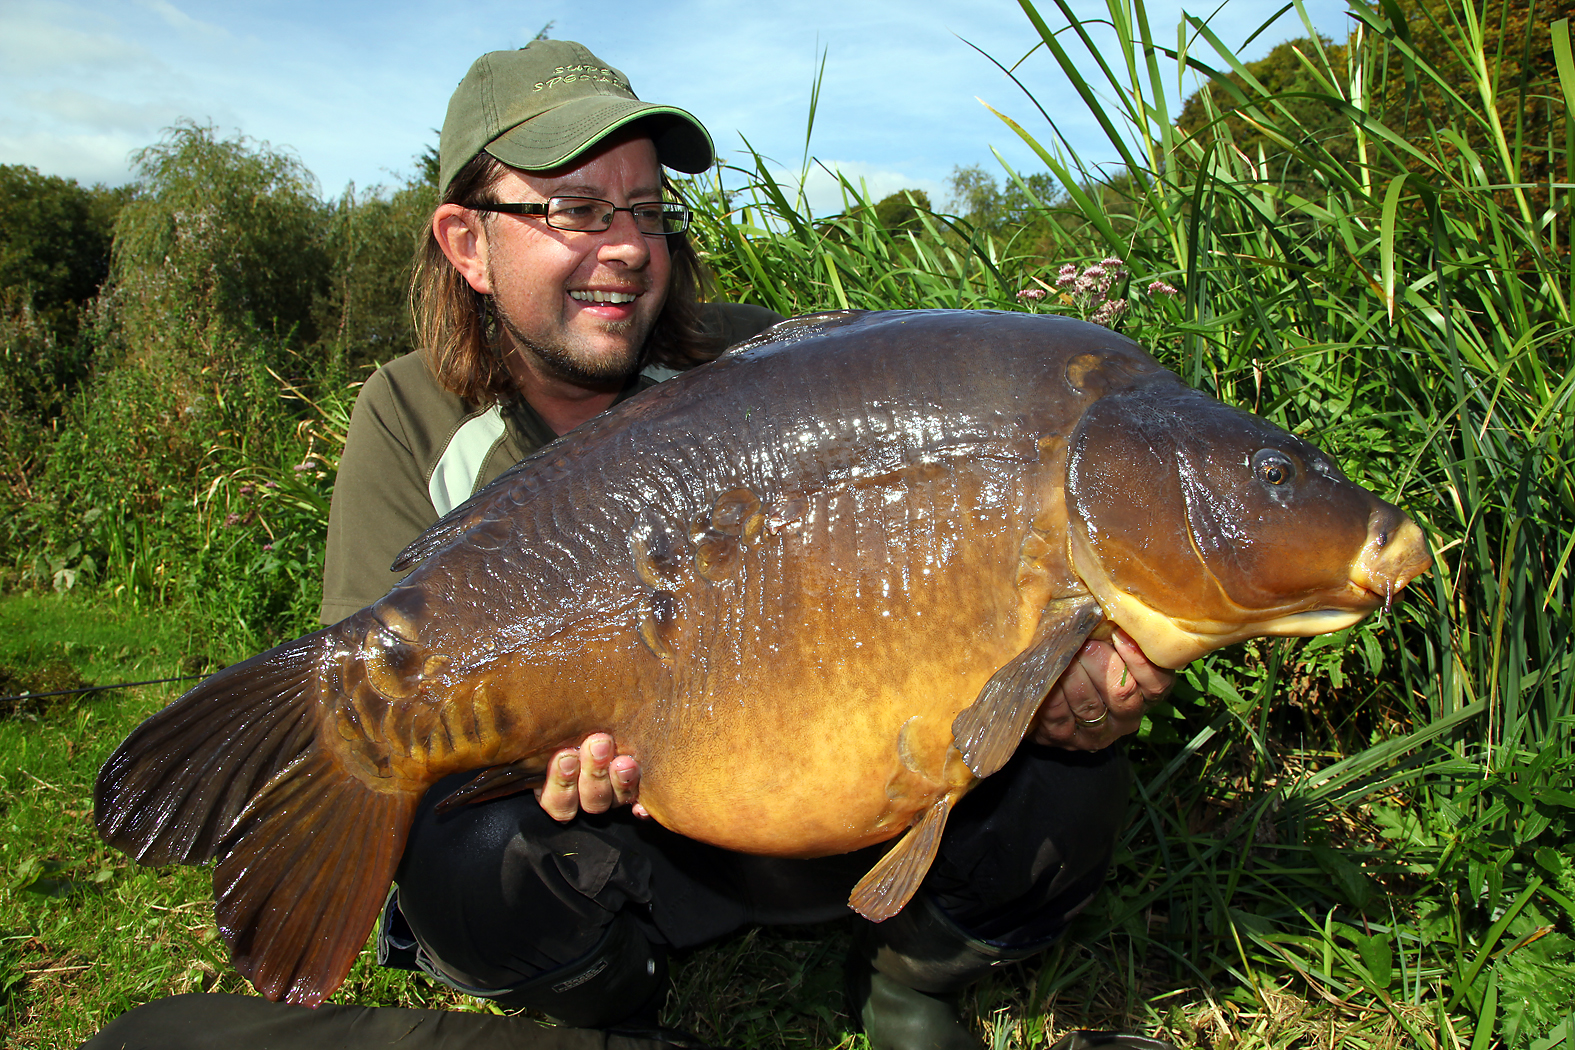 We see Martin land some stunning fish in this film